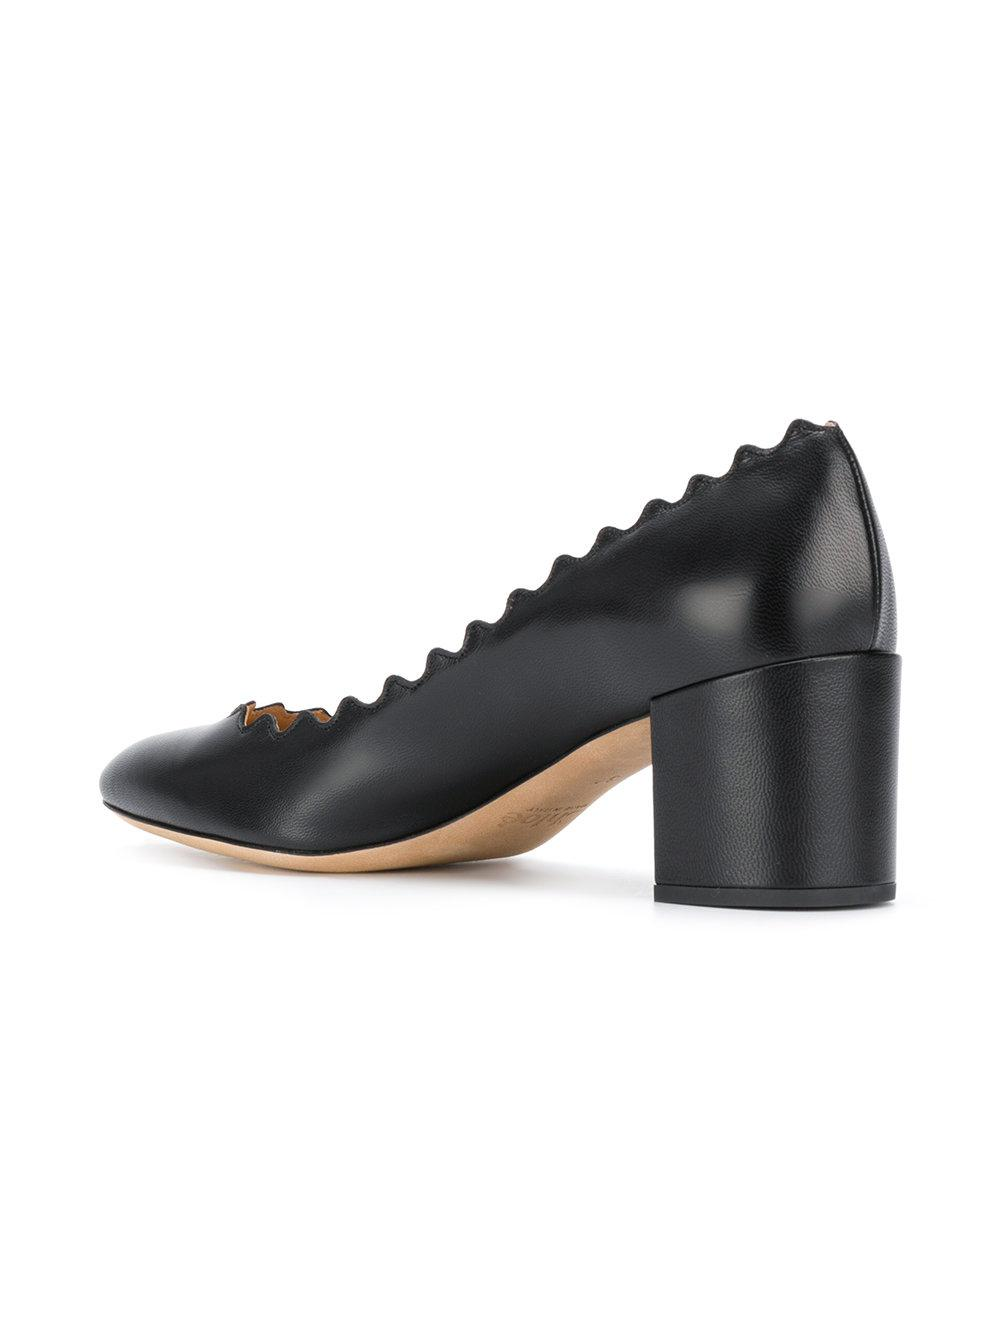 bb5993c02e728 Chloé - Black Lauren Mid-heel Pumps - Lyst. View fullscreen